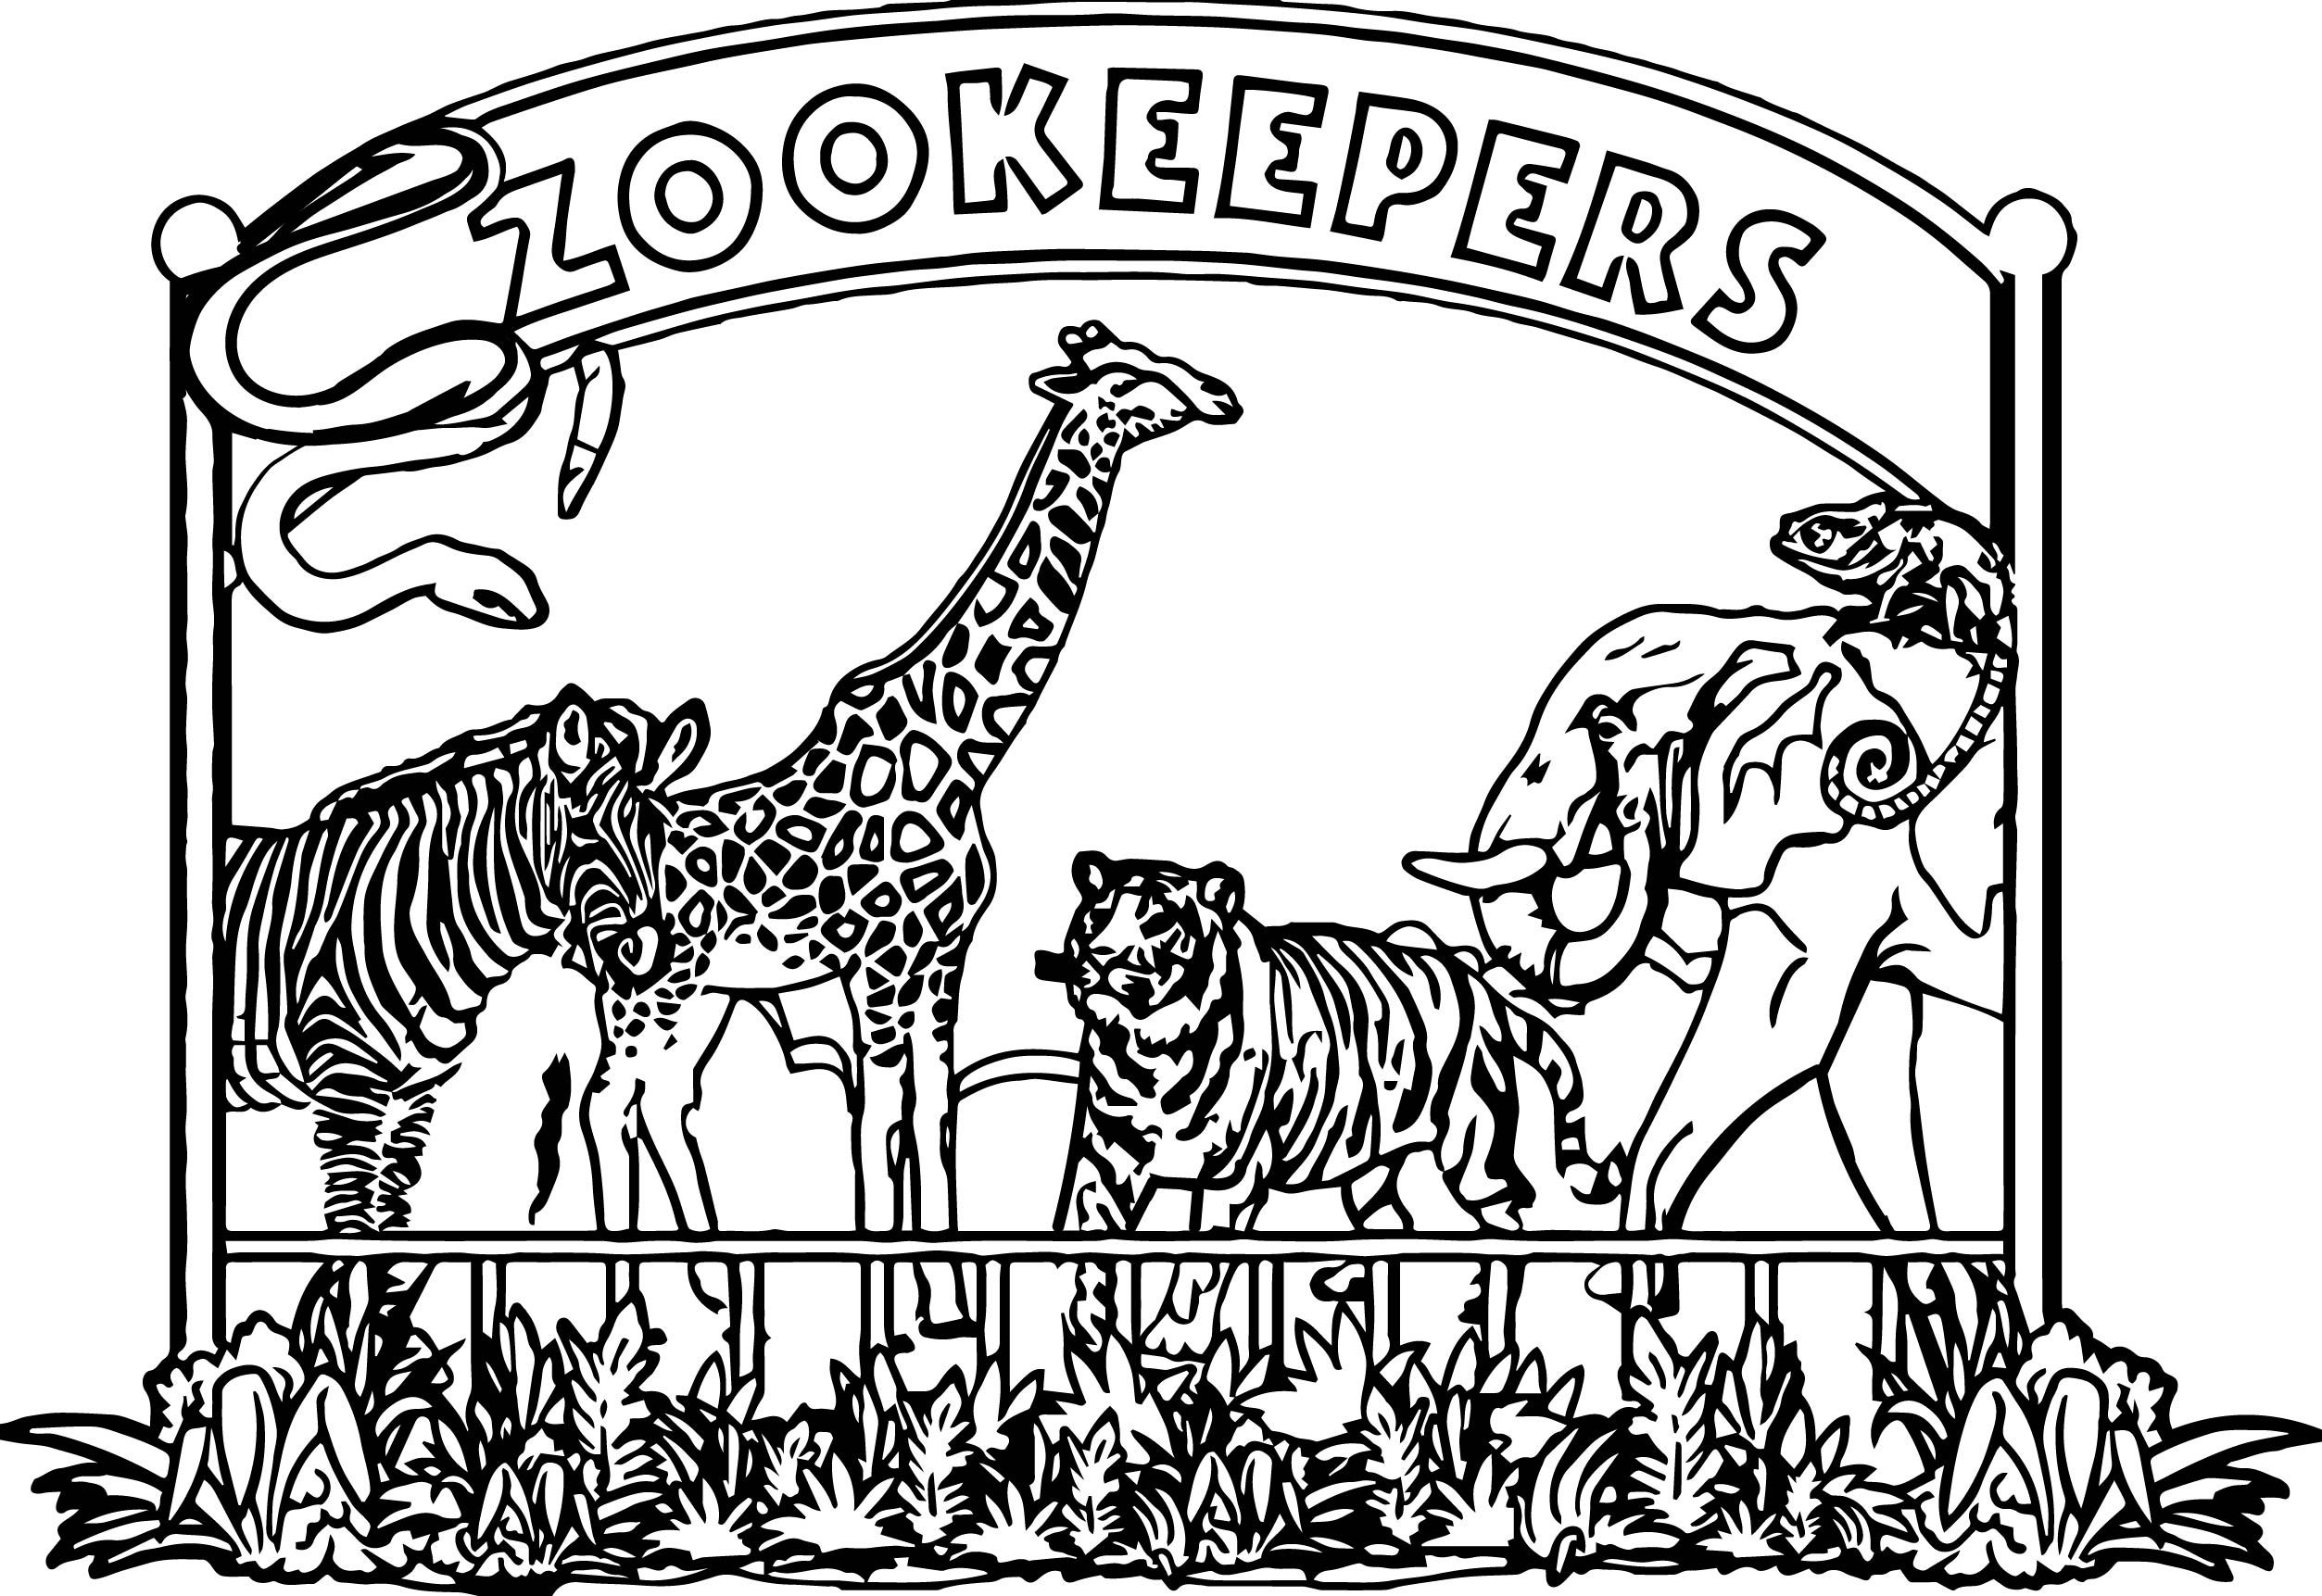 zoo keeper hat coloring page zookeeper hat coloring coloring coloring pages coloring hat page keeper zoo